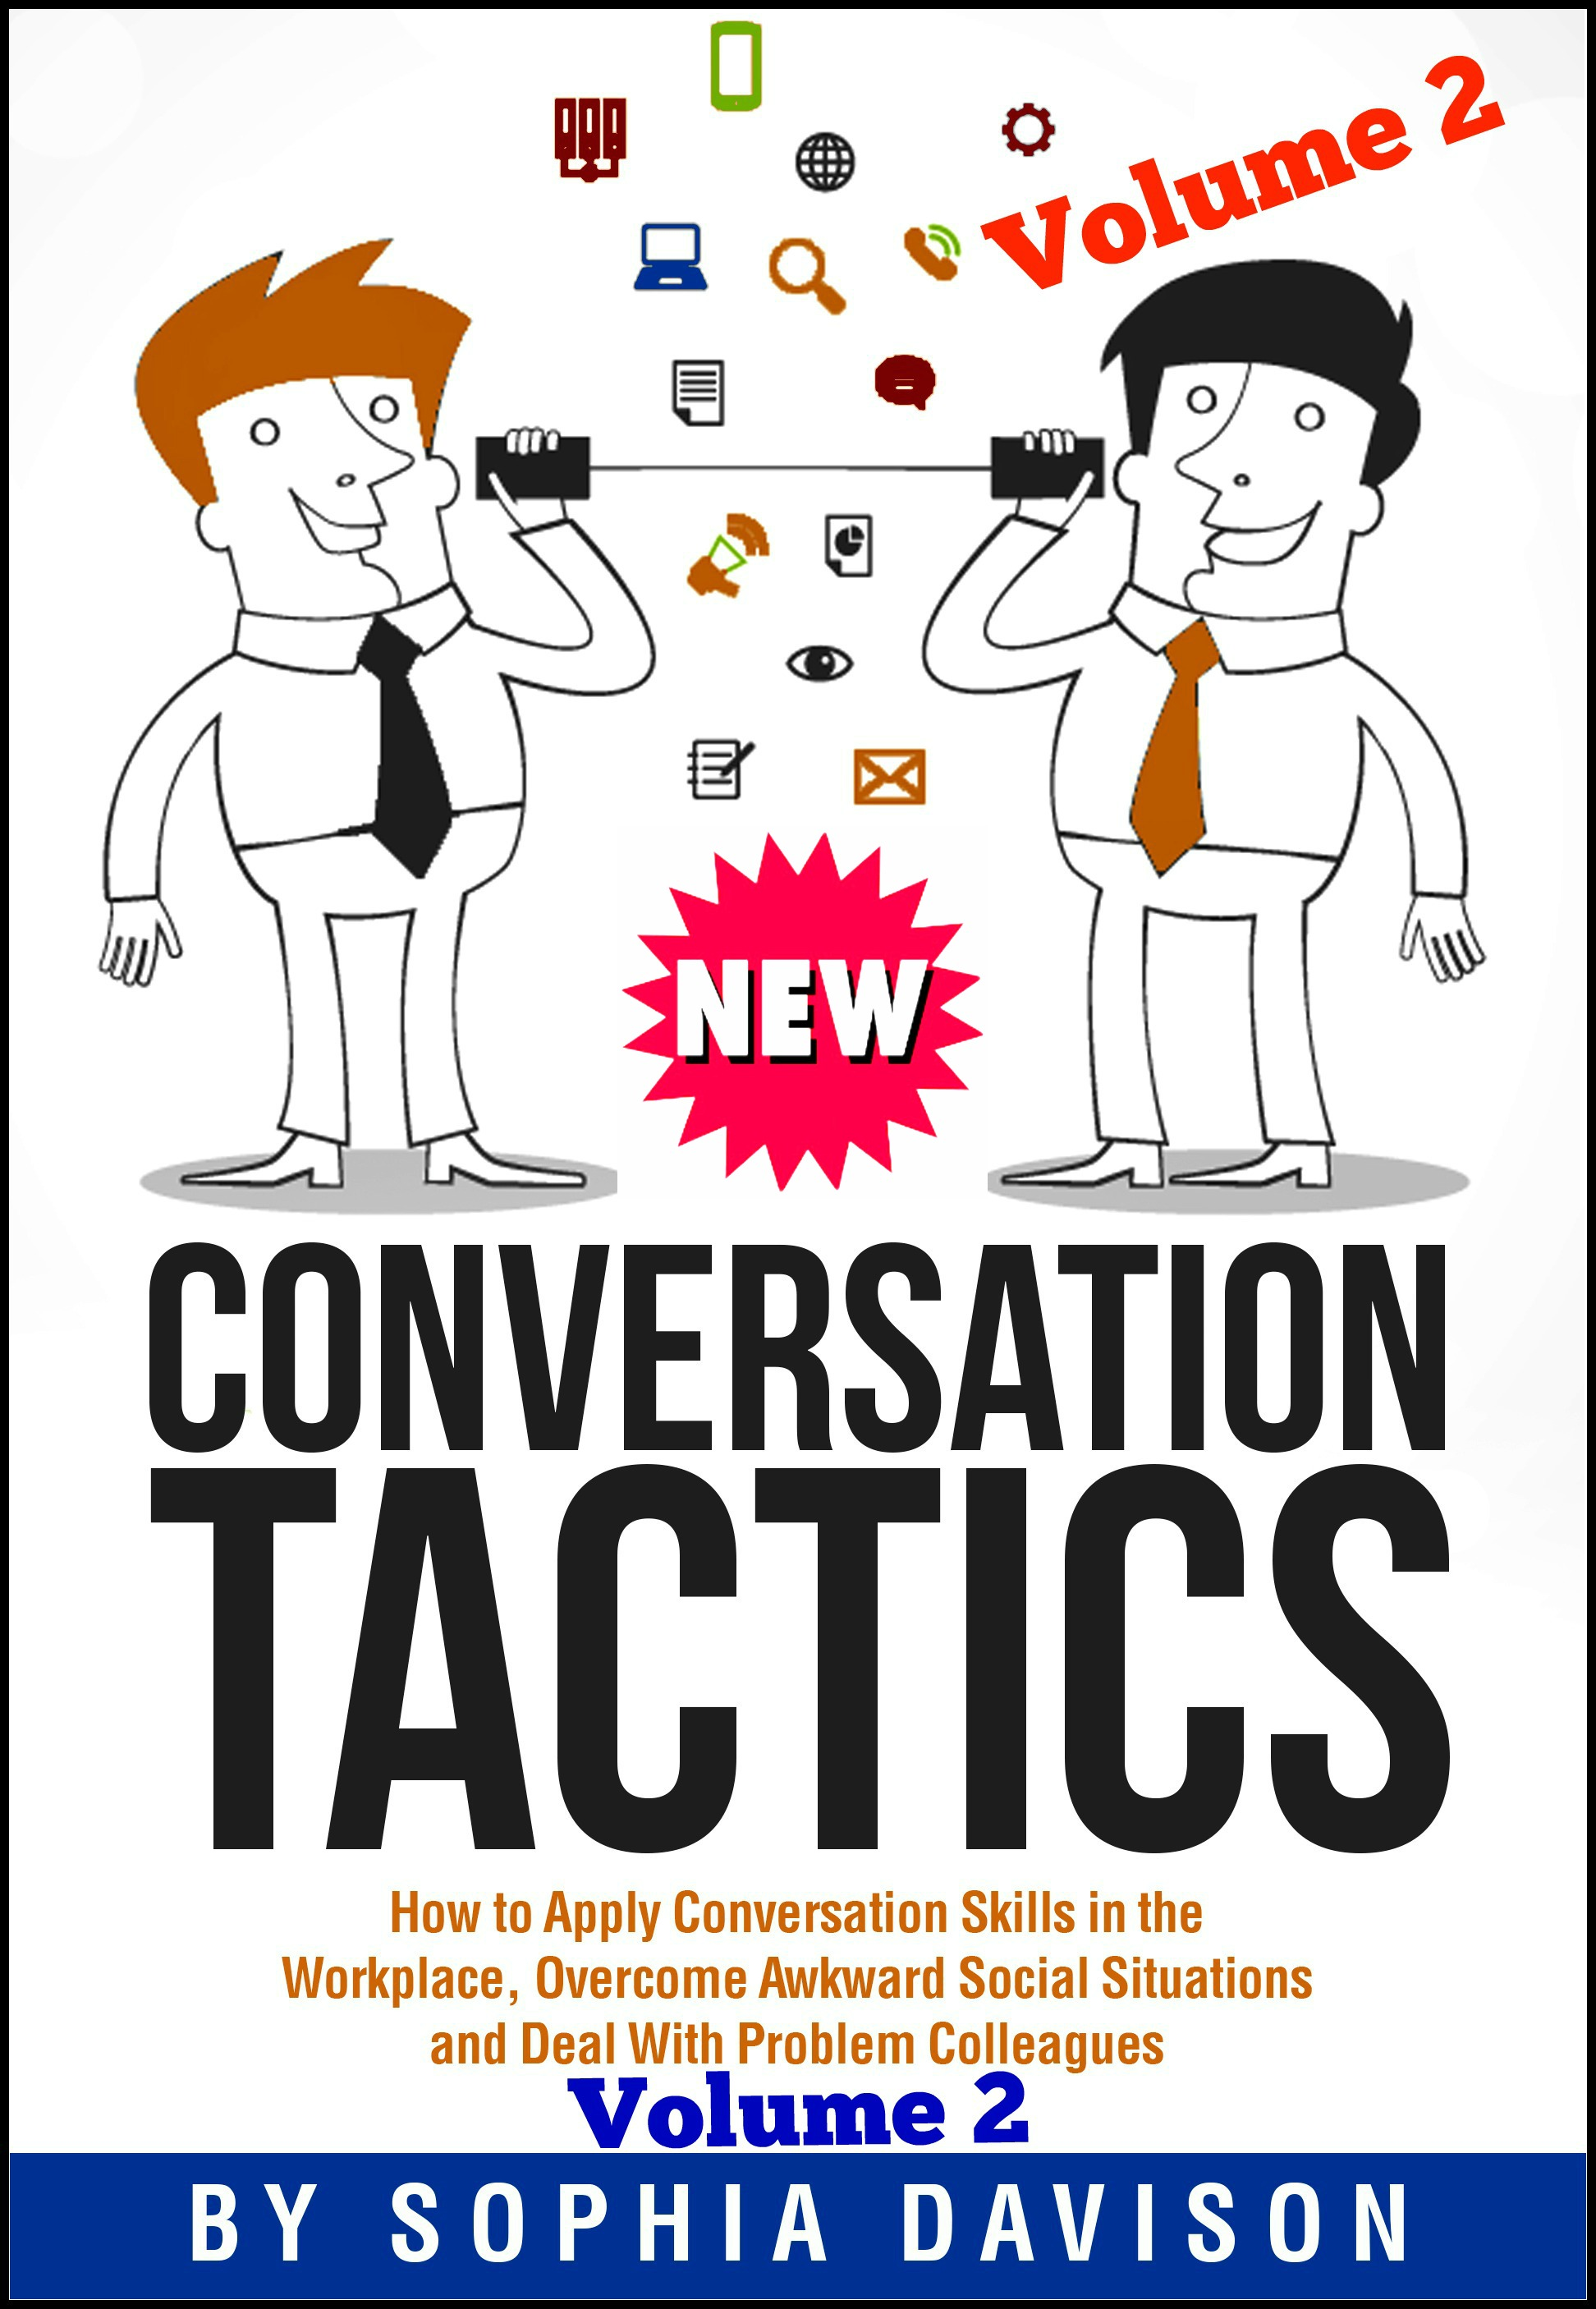 Conversation Tactics Volume 2